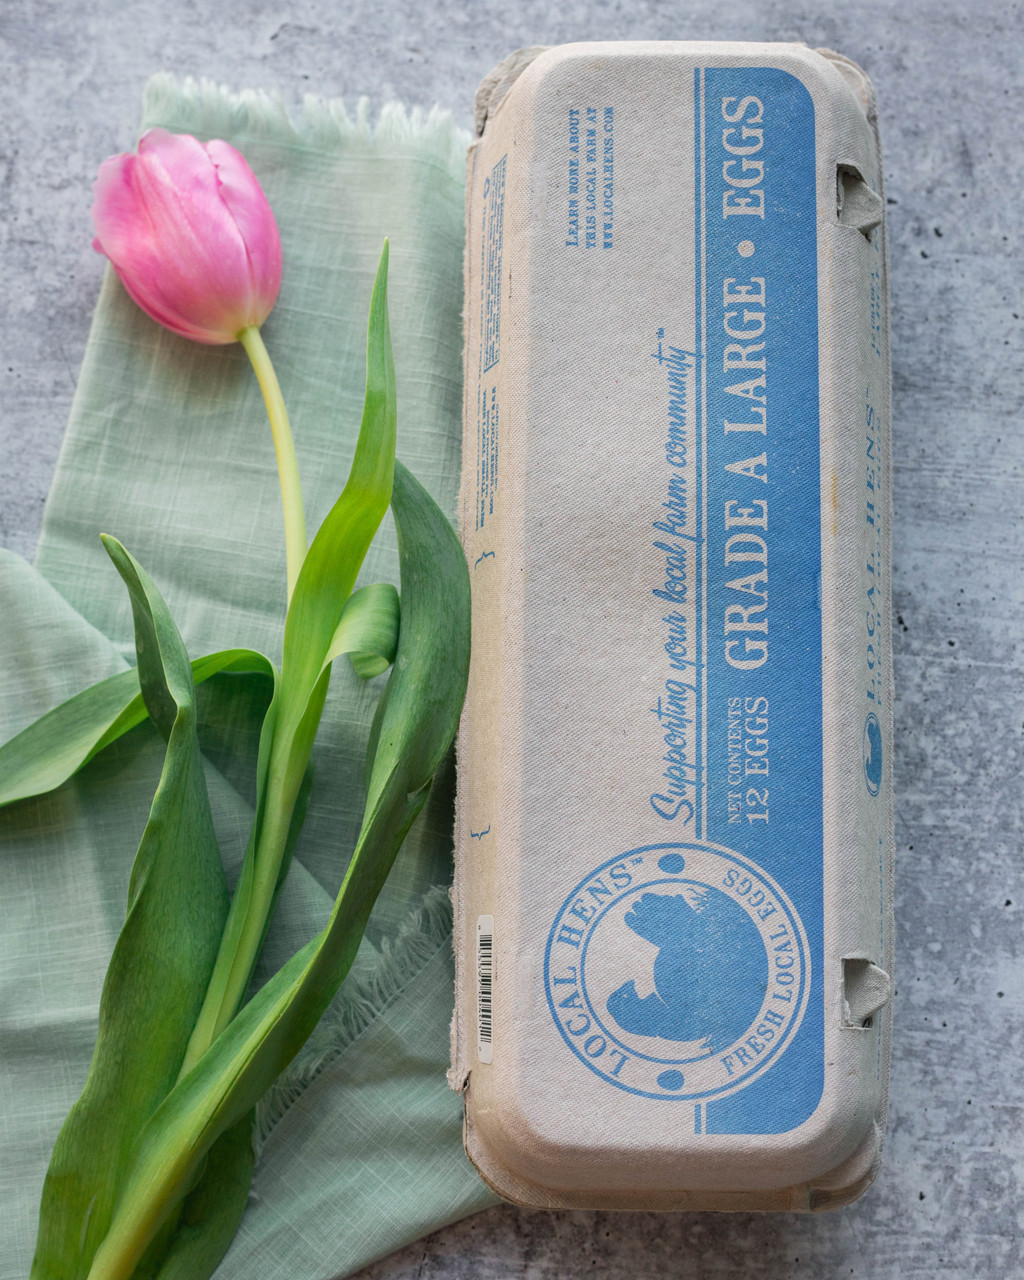 Closed blue Local Hens® Grade A Large Printed Paper-Pulp Carton with UPC on a table next to a pink flower